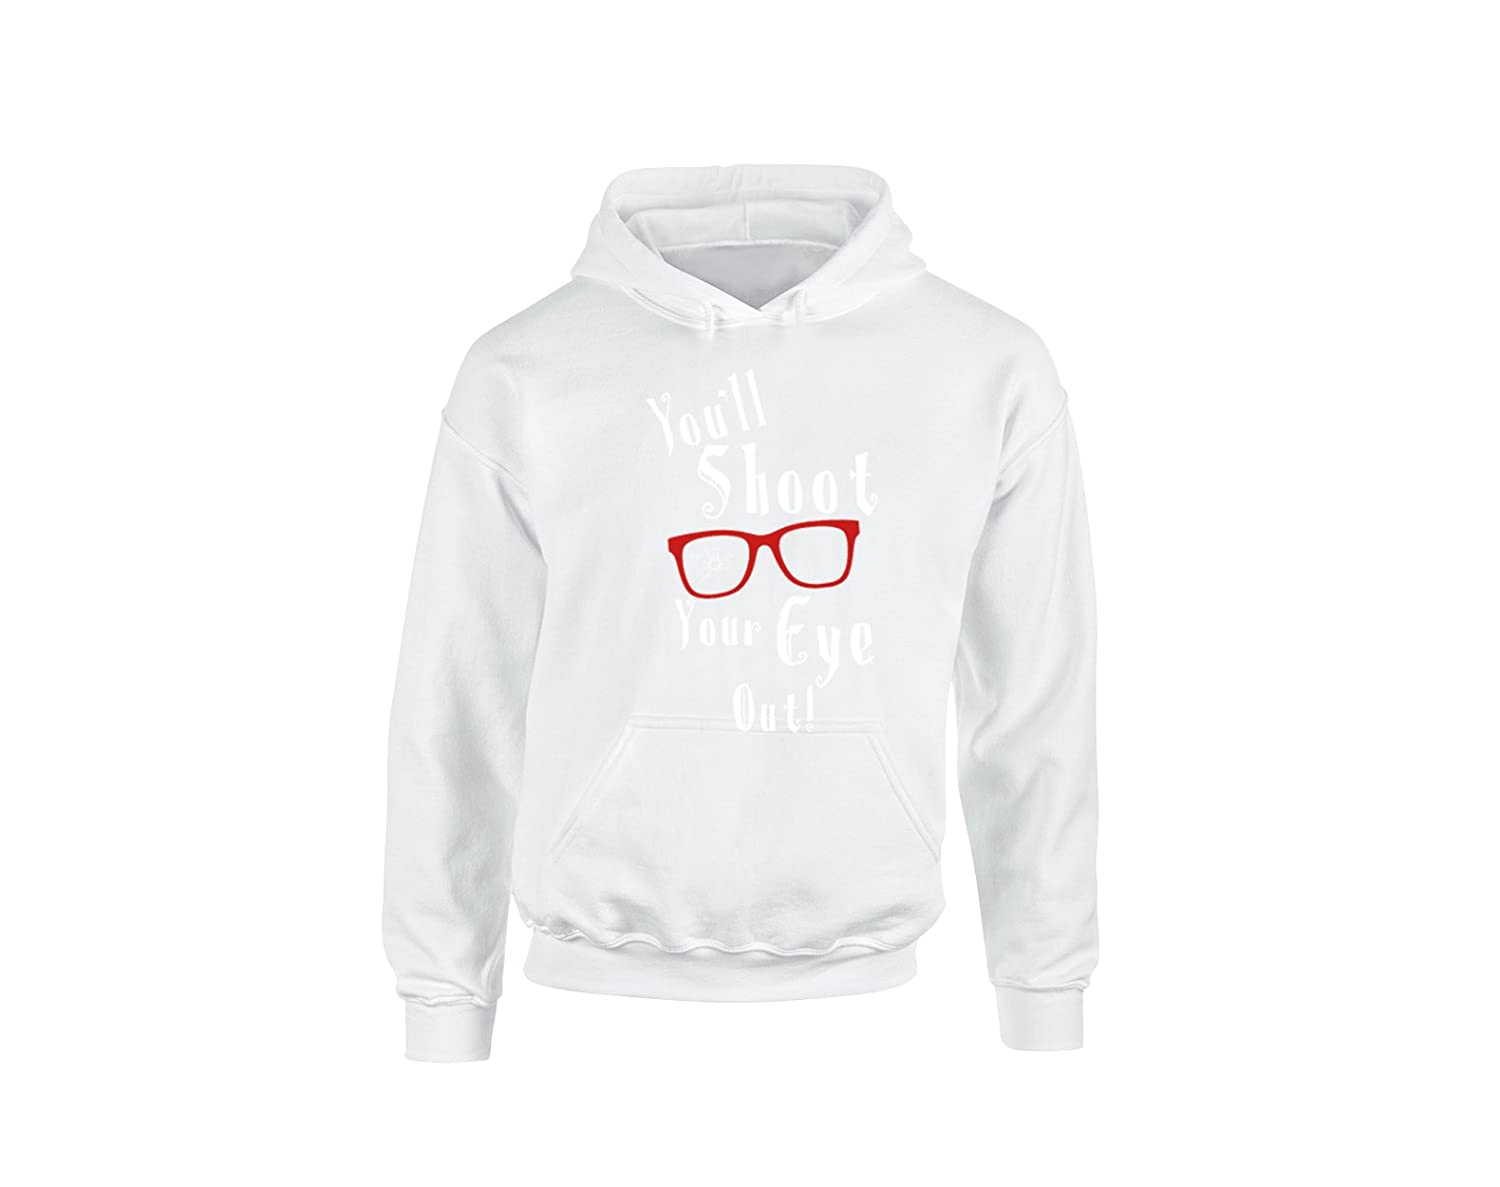 H/&T Shirt Hoodies for Women Men Ugly Christmas Shirts Youll Shoot Your Eye Out Sweats